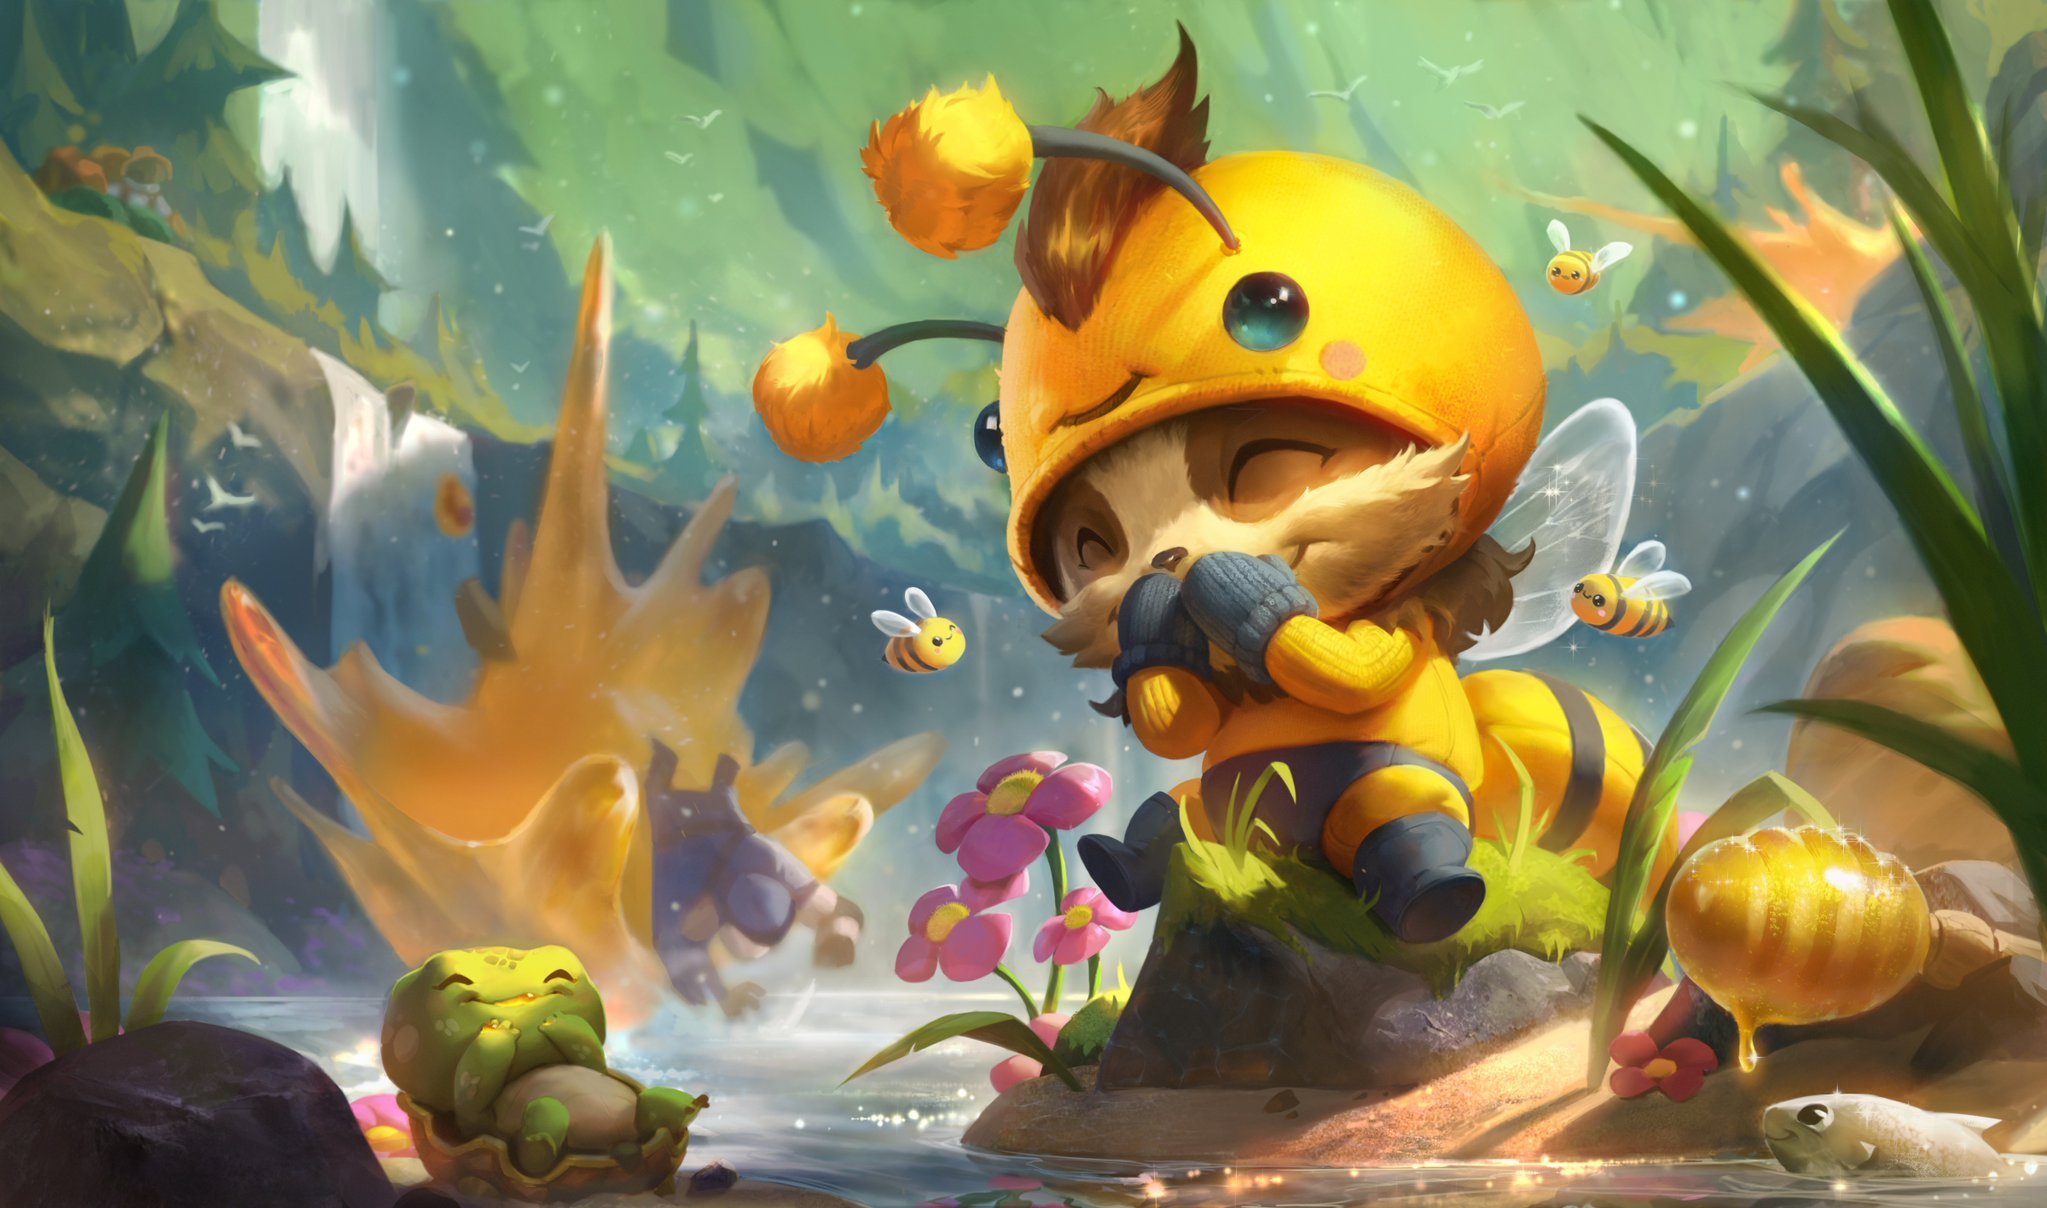 Beemo Hd Wallpaper Background Image 2047x1208 Id 917385